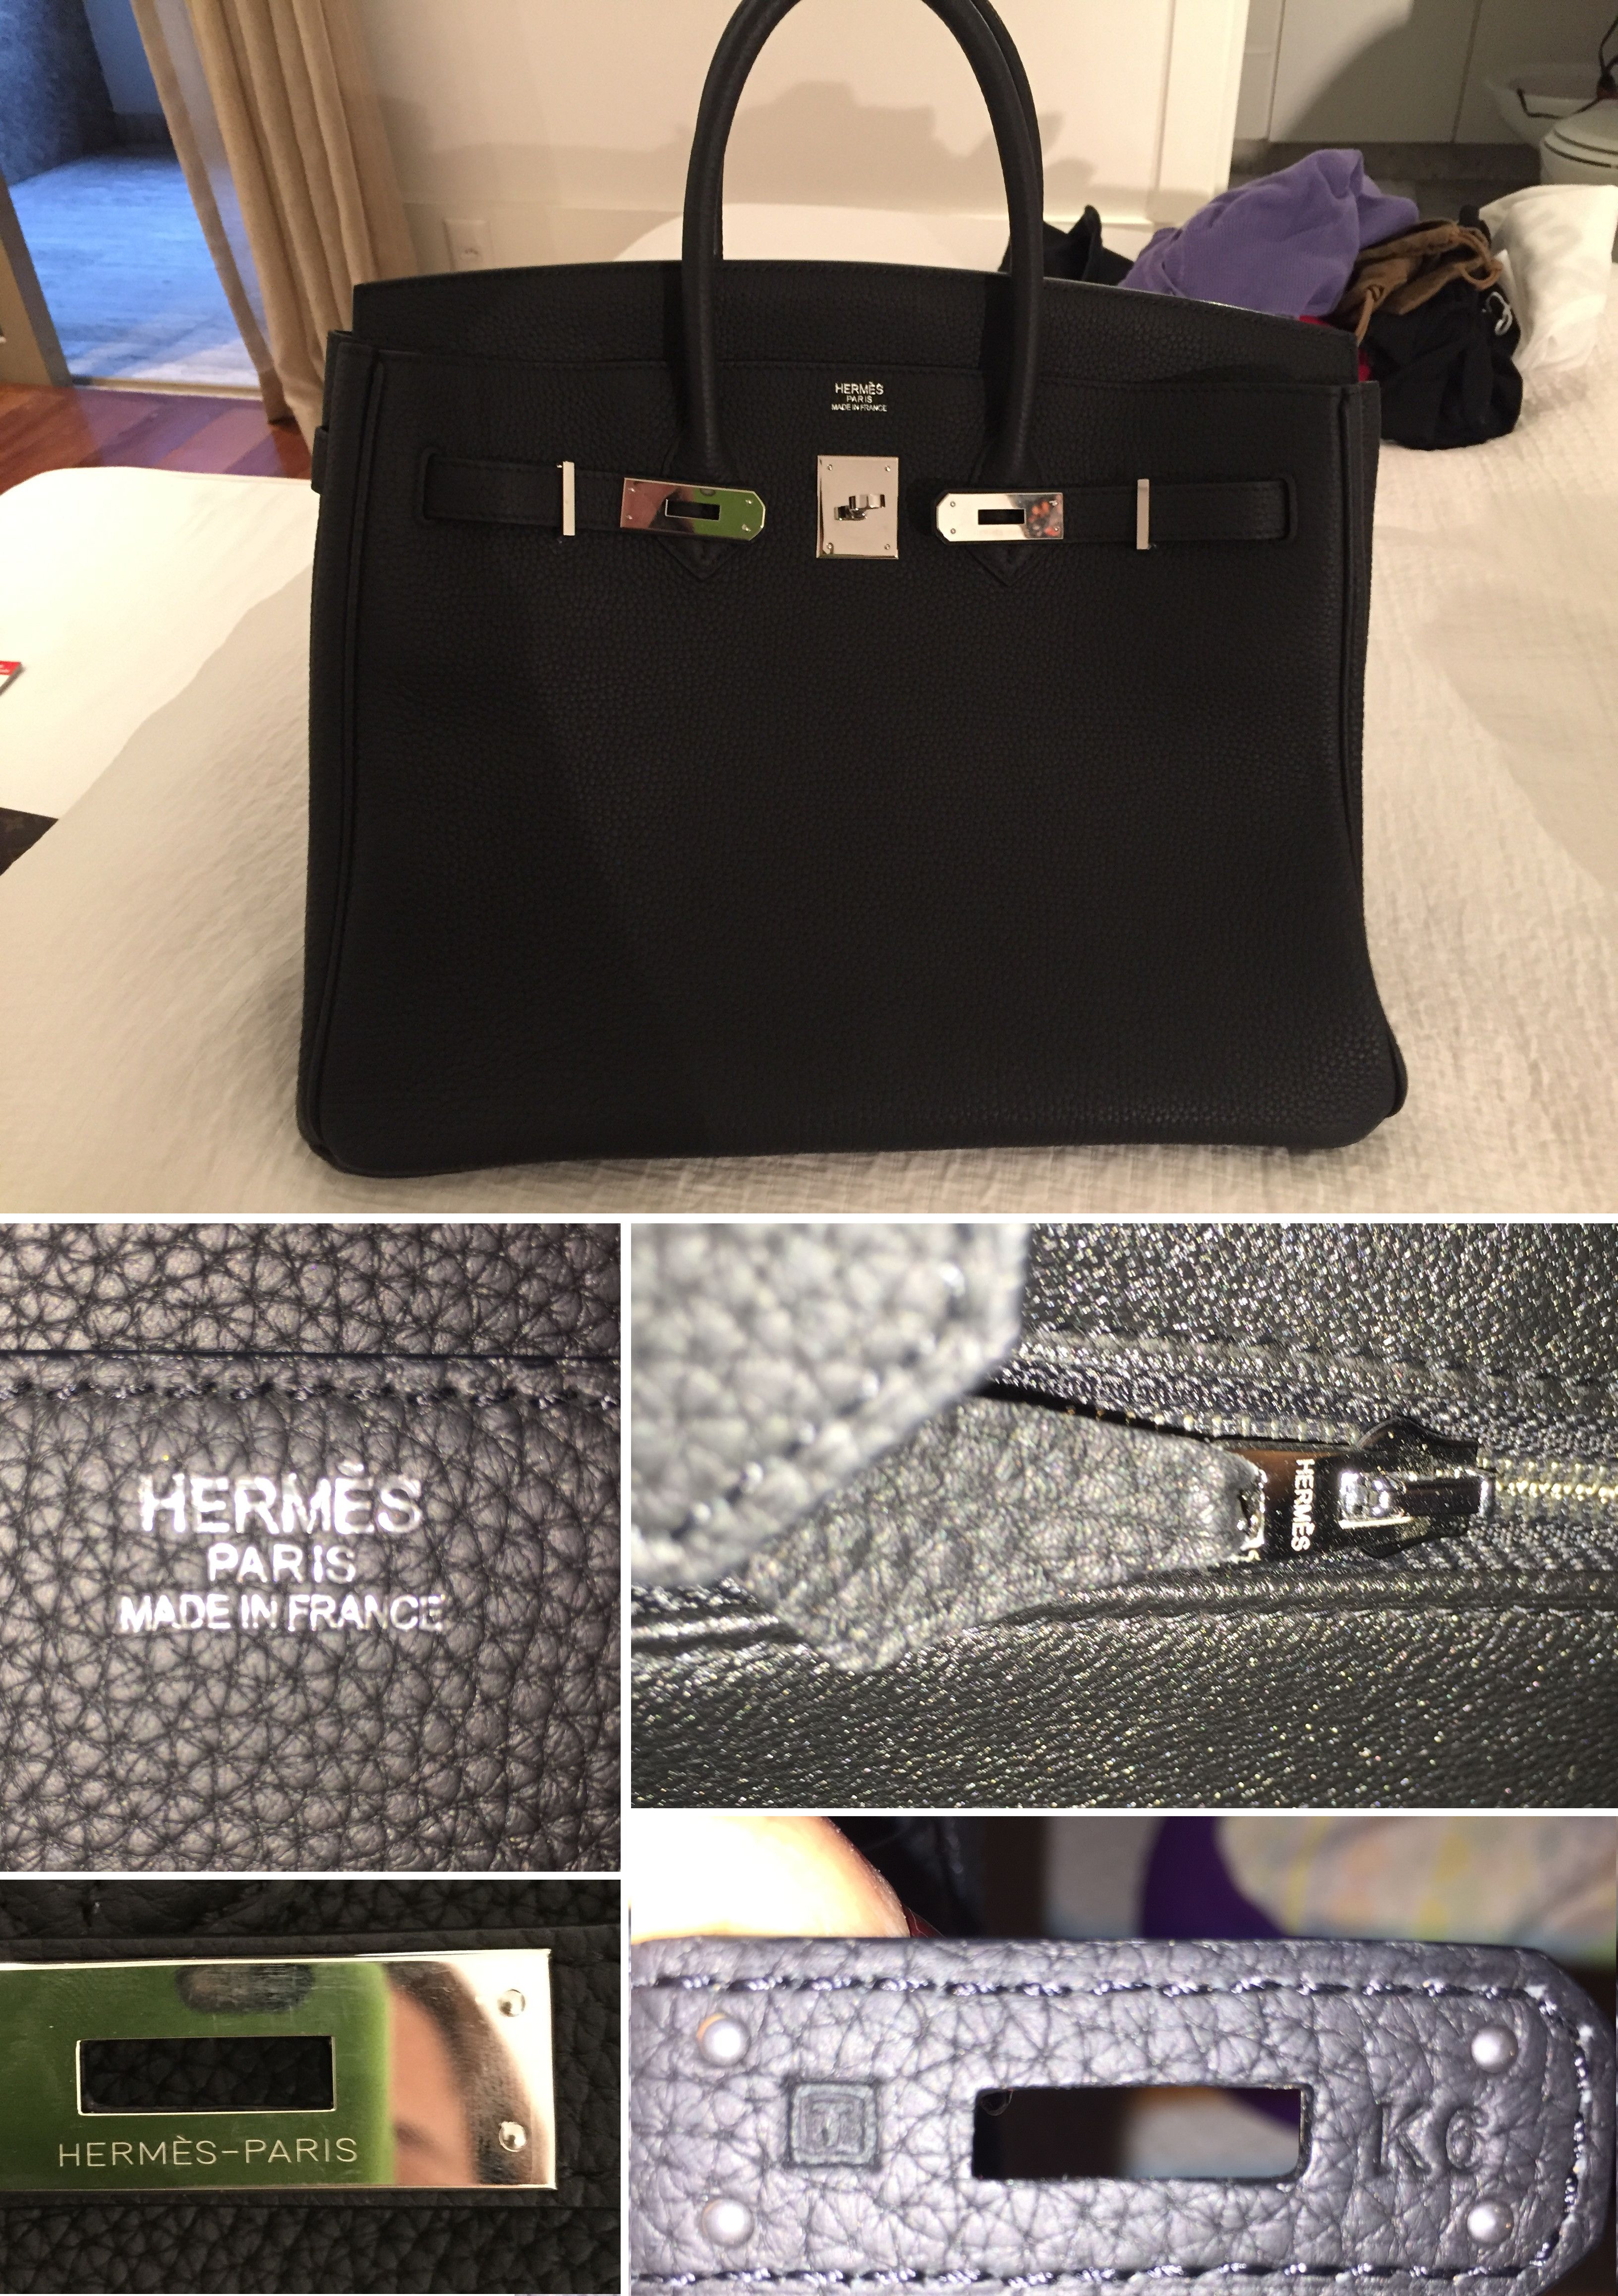 e6bc42c6a921 Commonly Faked Designer Goods: Louis Vuitton, Chanel, Hermes | Lollipuff  Here are some of the most commonly counterfeited designer brands out there.  Can you ...